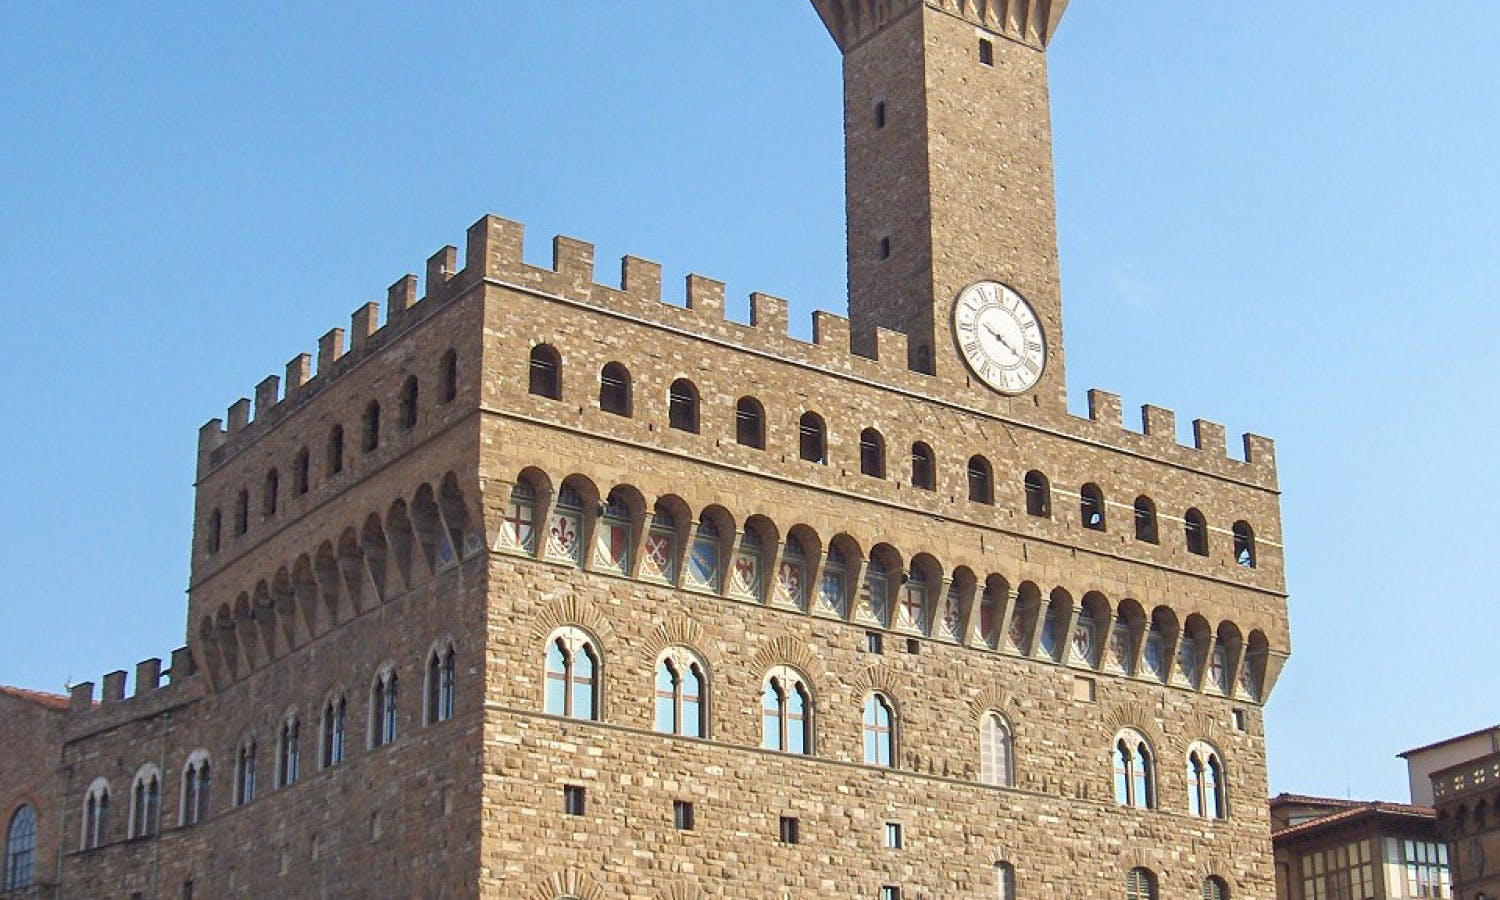 Best of Florence Morning Tour with Uffizi and Accademia Gallery: Skip the Line Tickets and Guided Visit